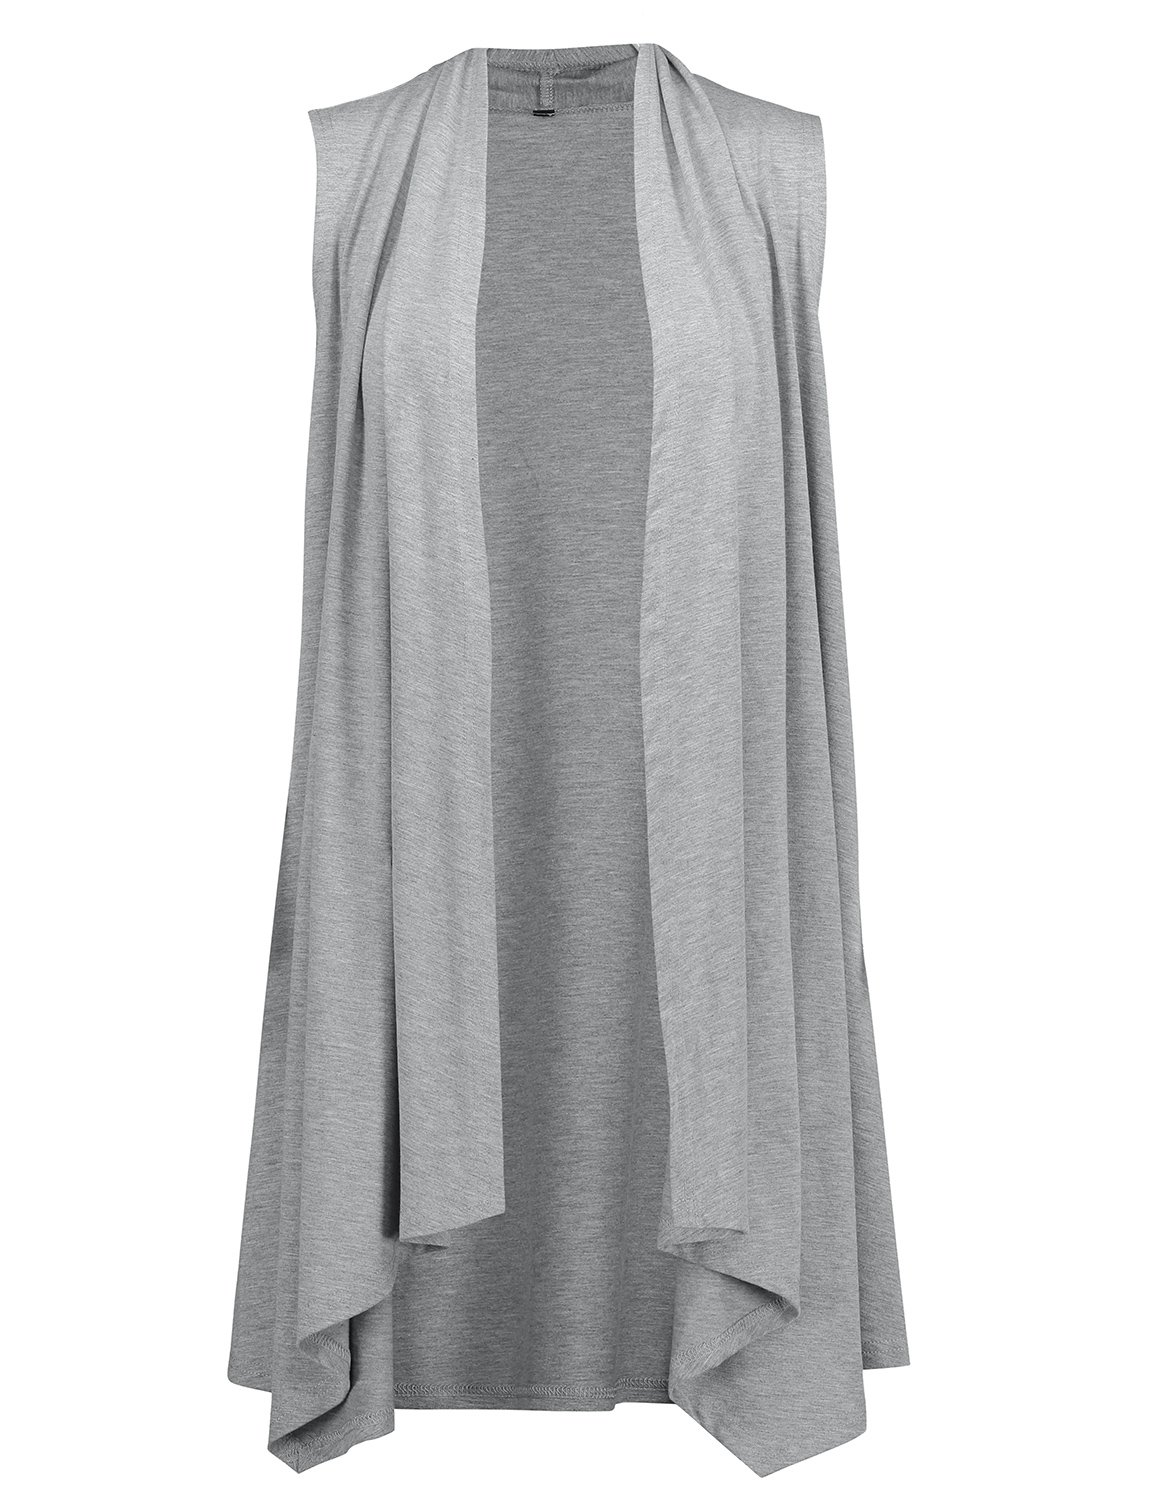 ZAN.STYLE Women's Summer Lightweight Sleeveless Cardigan Vest Open Front Drape Long Vest Cardigan